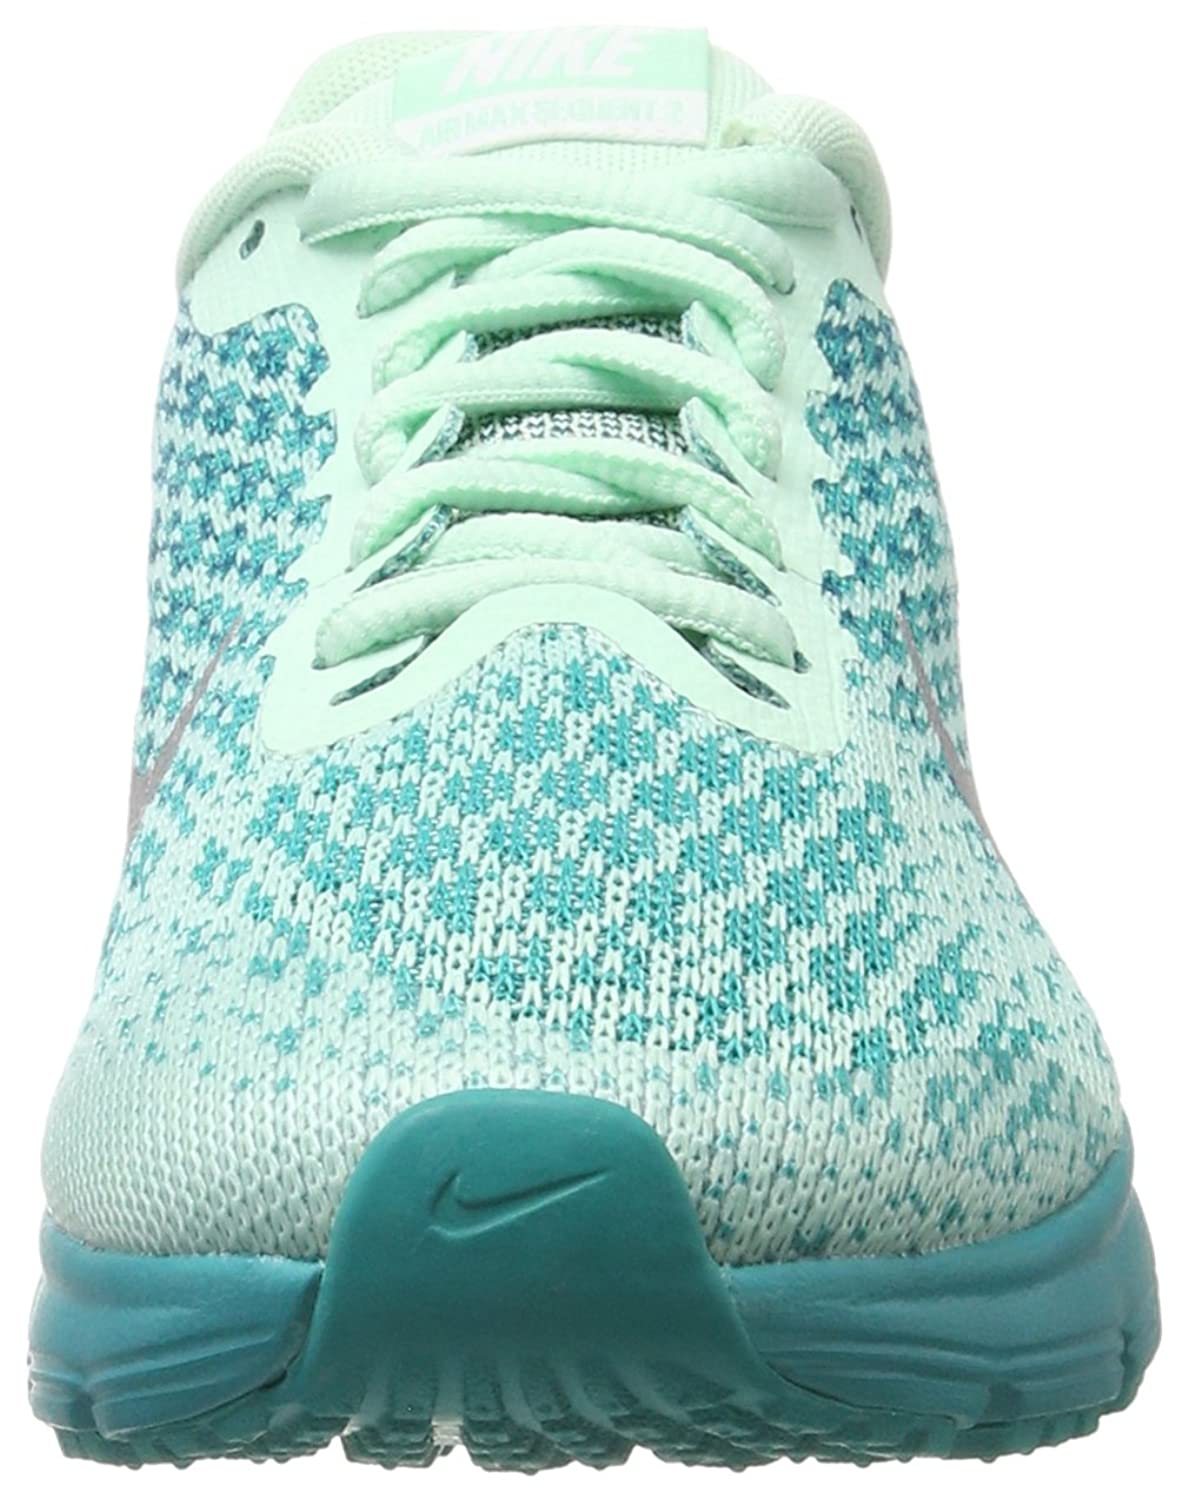 Air Max Sequent 2 GS, Zapatillas de Gimnasia para Niños, Verde (Mint Foam/Metallic Silver/Blustery/Turbo Green), 38 EU Nike